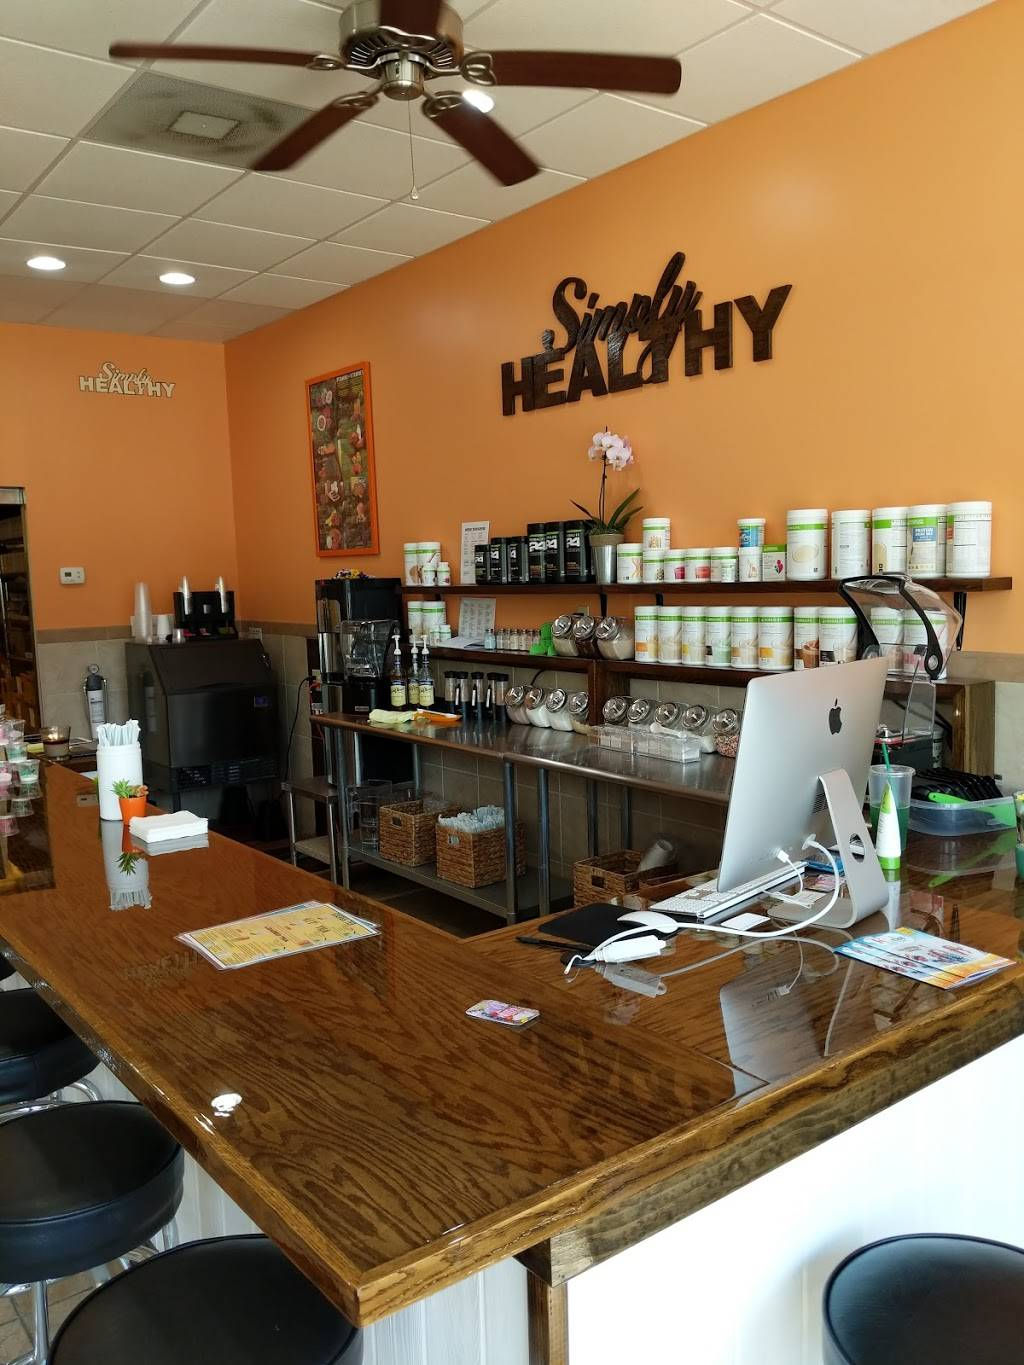 Simply Healthy | restaurant | 8753 Holly Springs Rd, Apex, NC 27539, USA | 9196506444 OR +1 919-650-6444